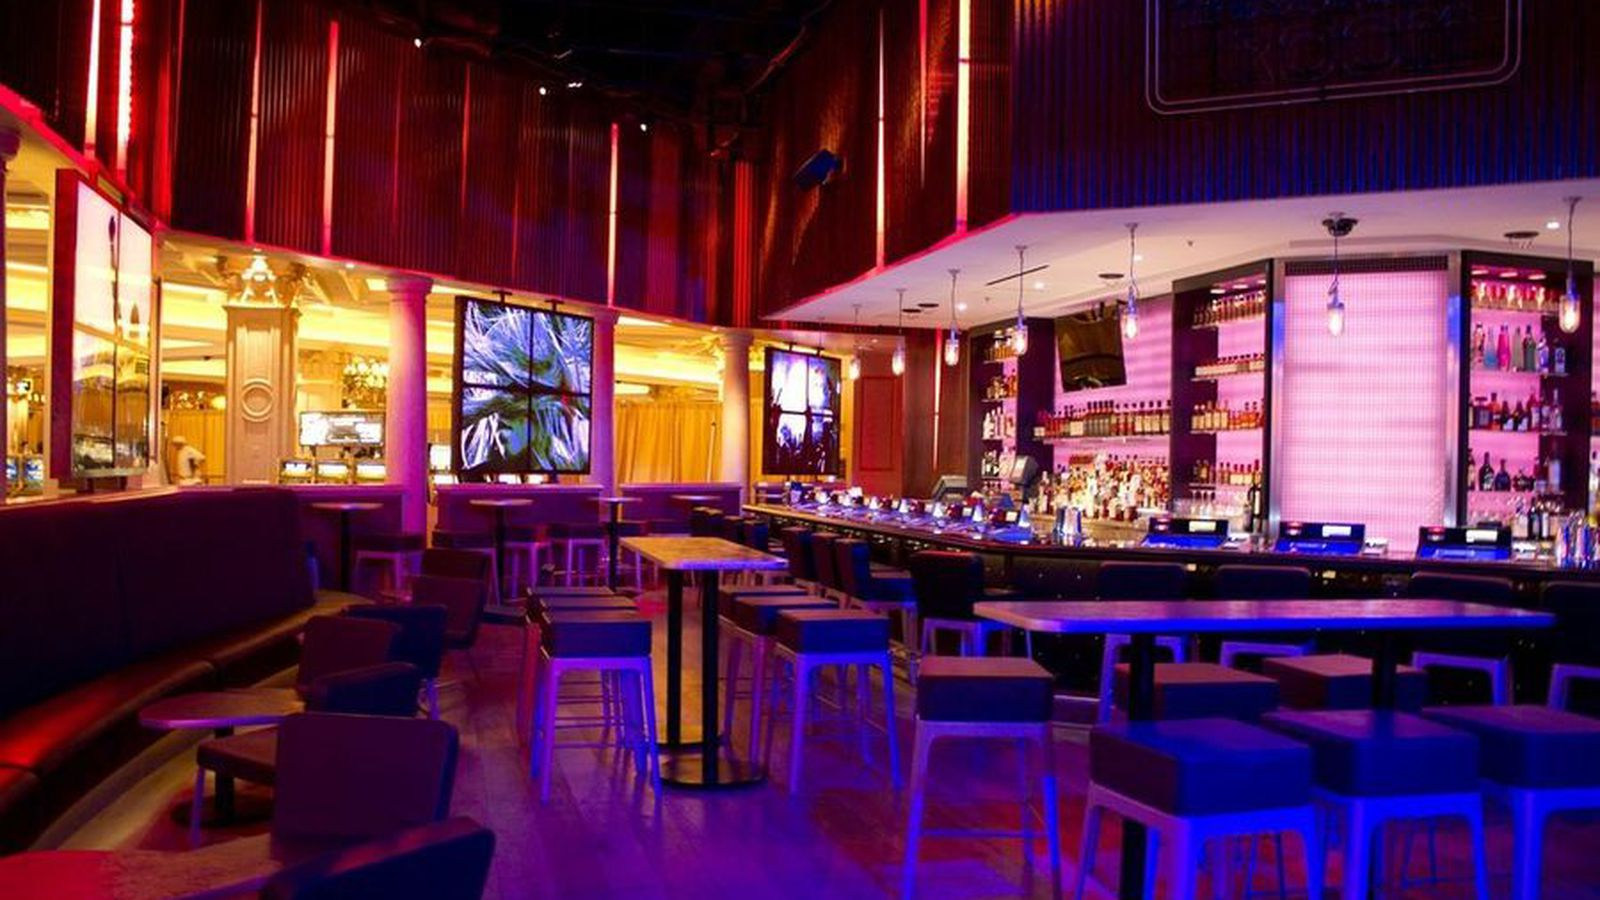 Rock Of Ages To Leave Venetian The Bourbon Room To Stay